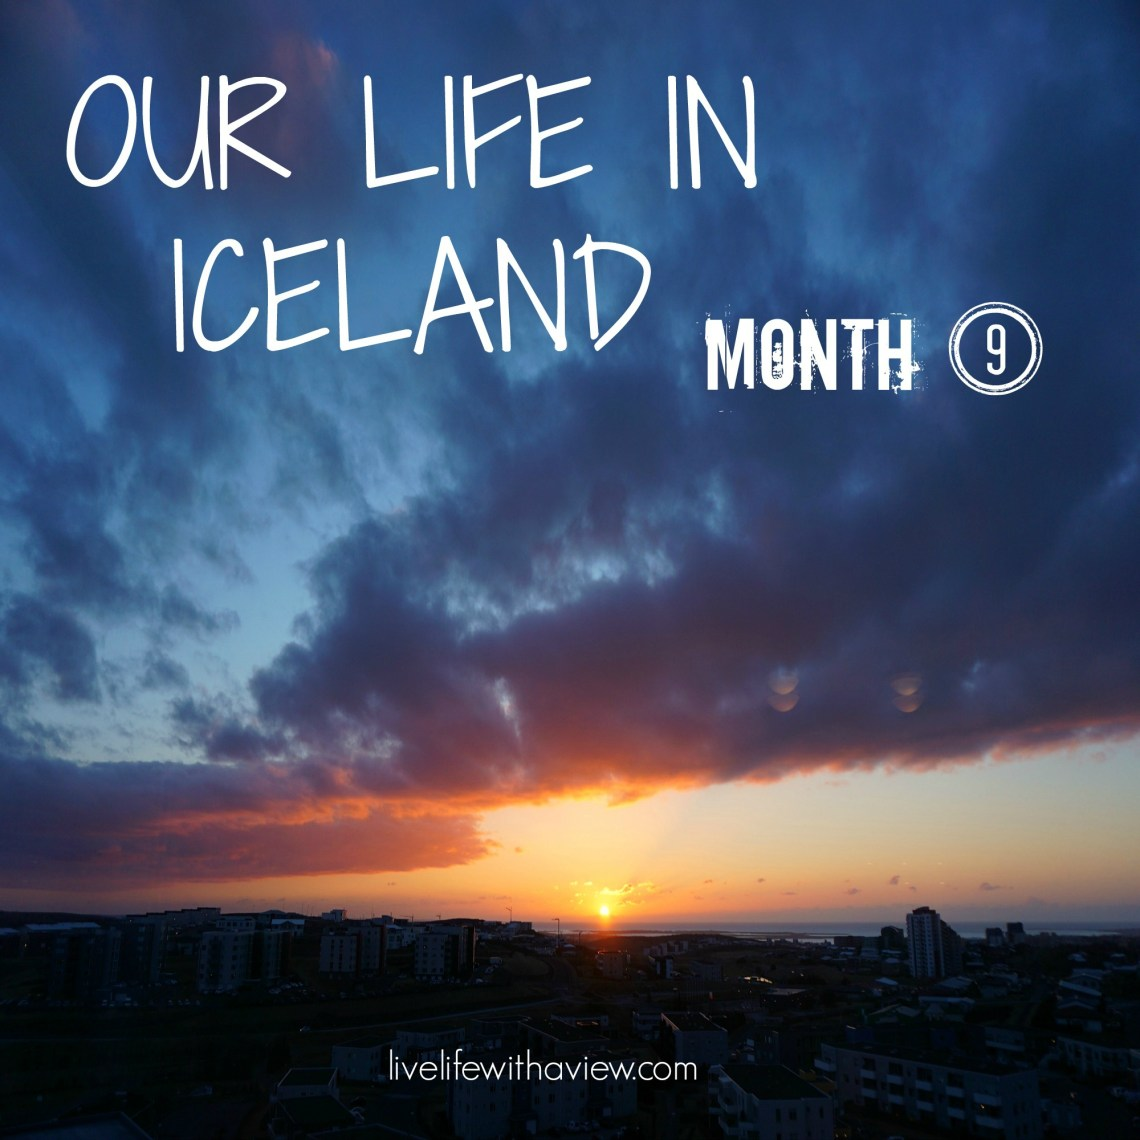 Our Life in Iceland - Month 9